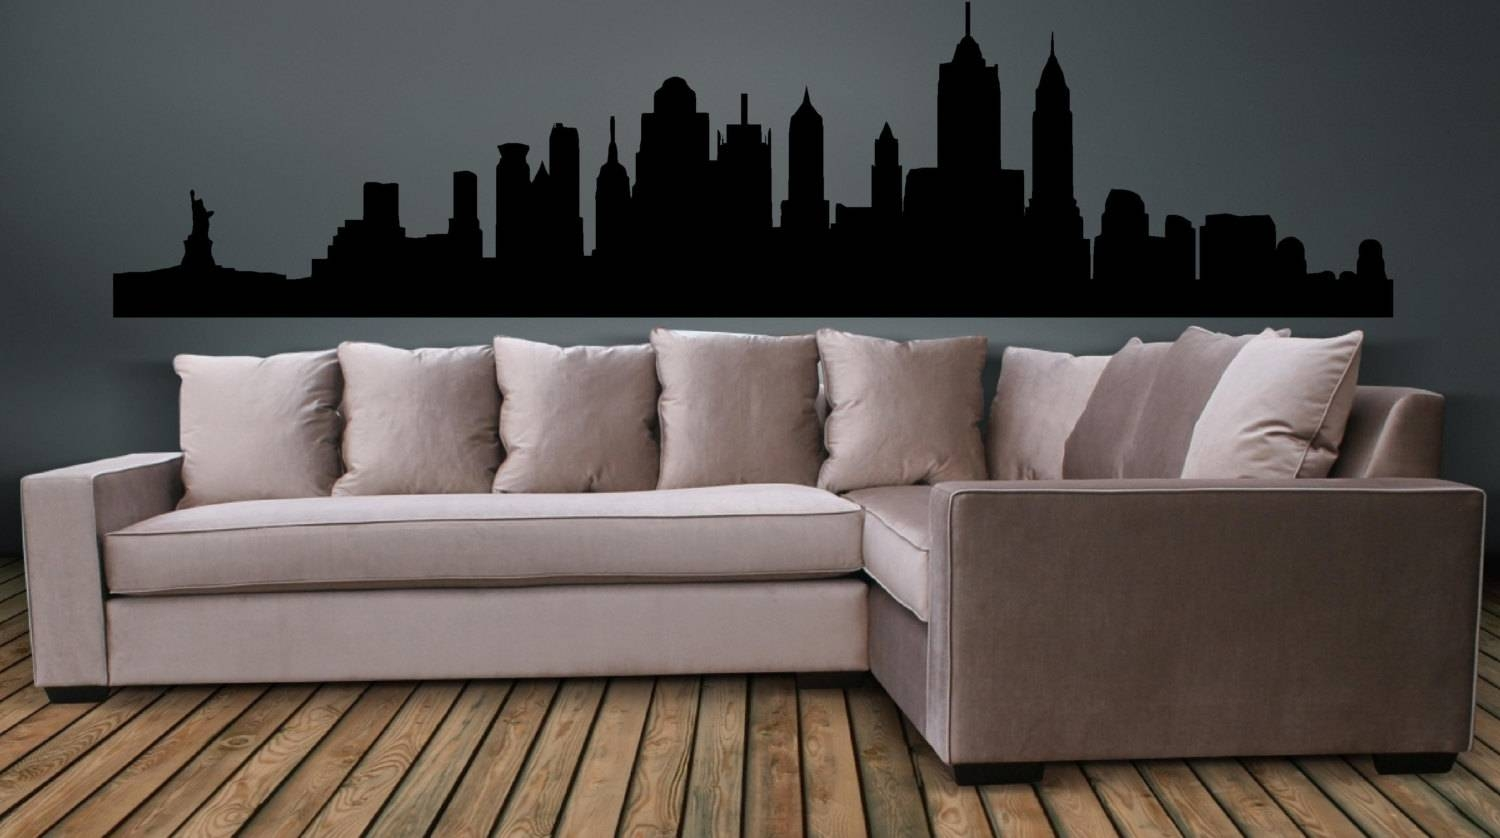 New York City Skyline Wall Decal Wall Art Sticker Pertaining To Most Recent New York City Wall Art (Gallery 16 of 20)